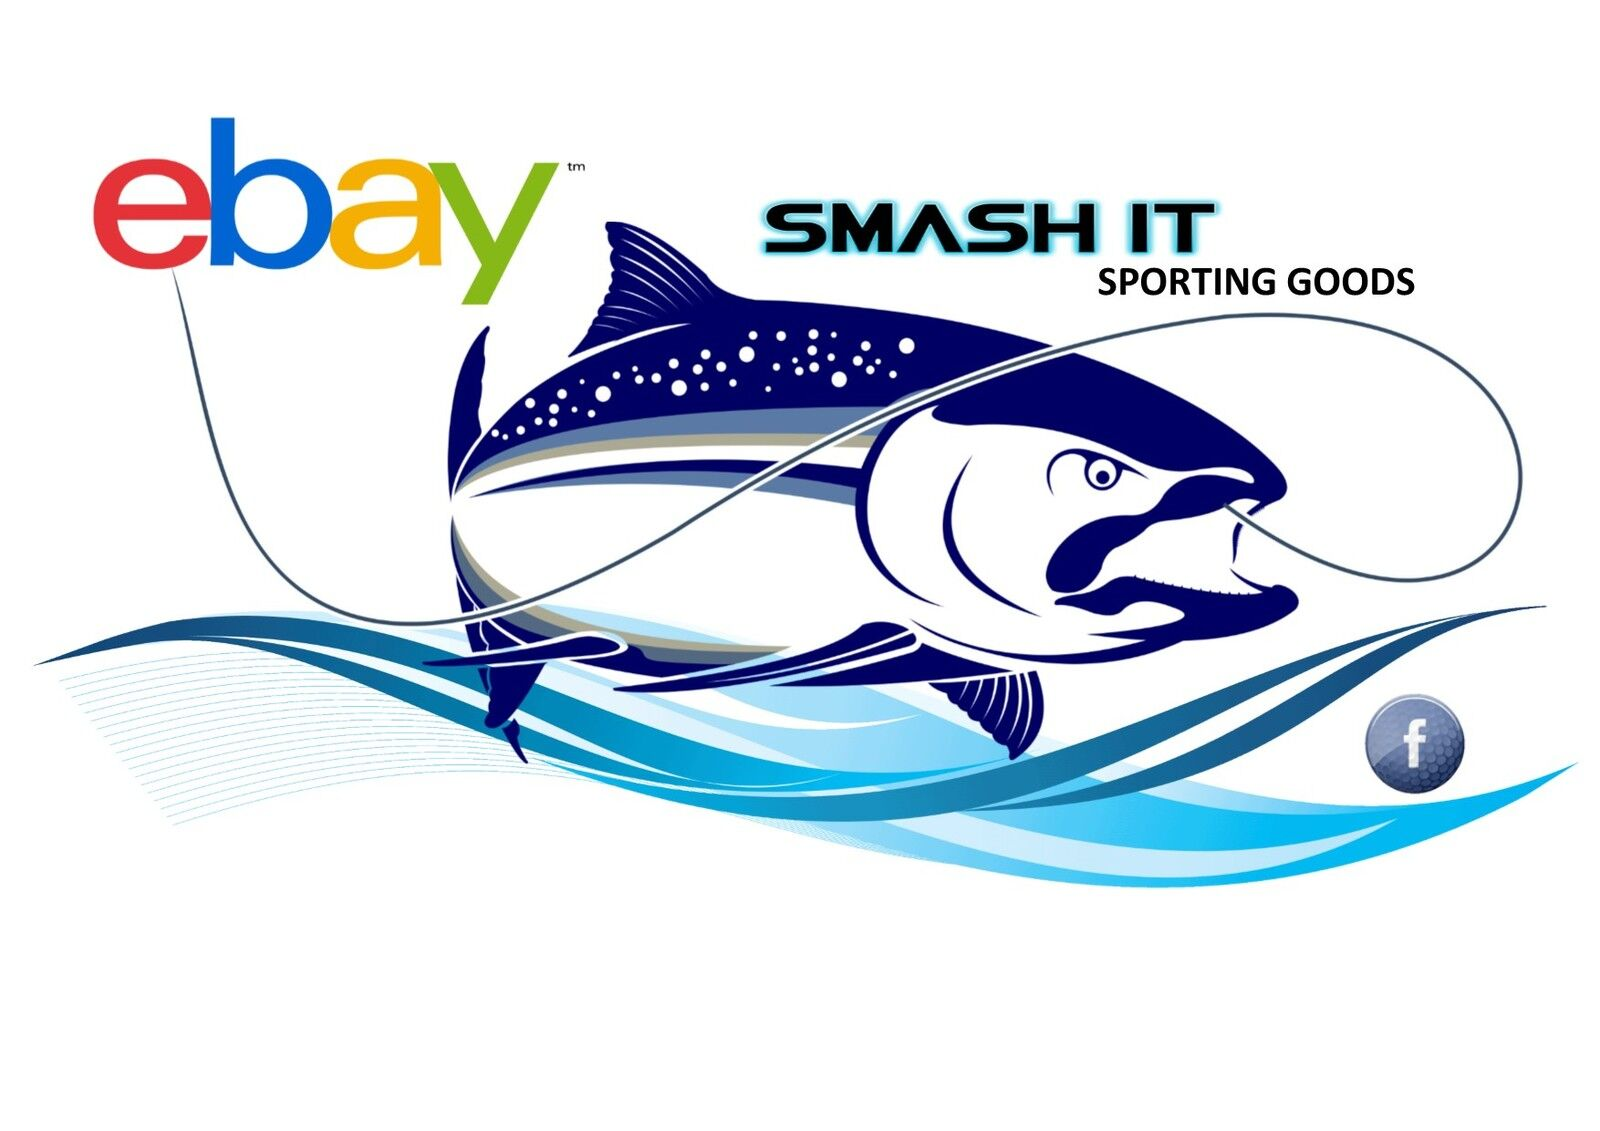 SMASH IT SPORTING GOODS